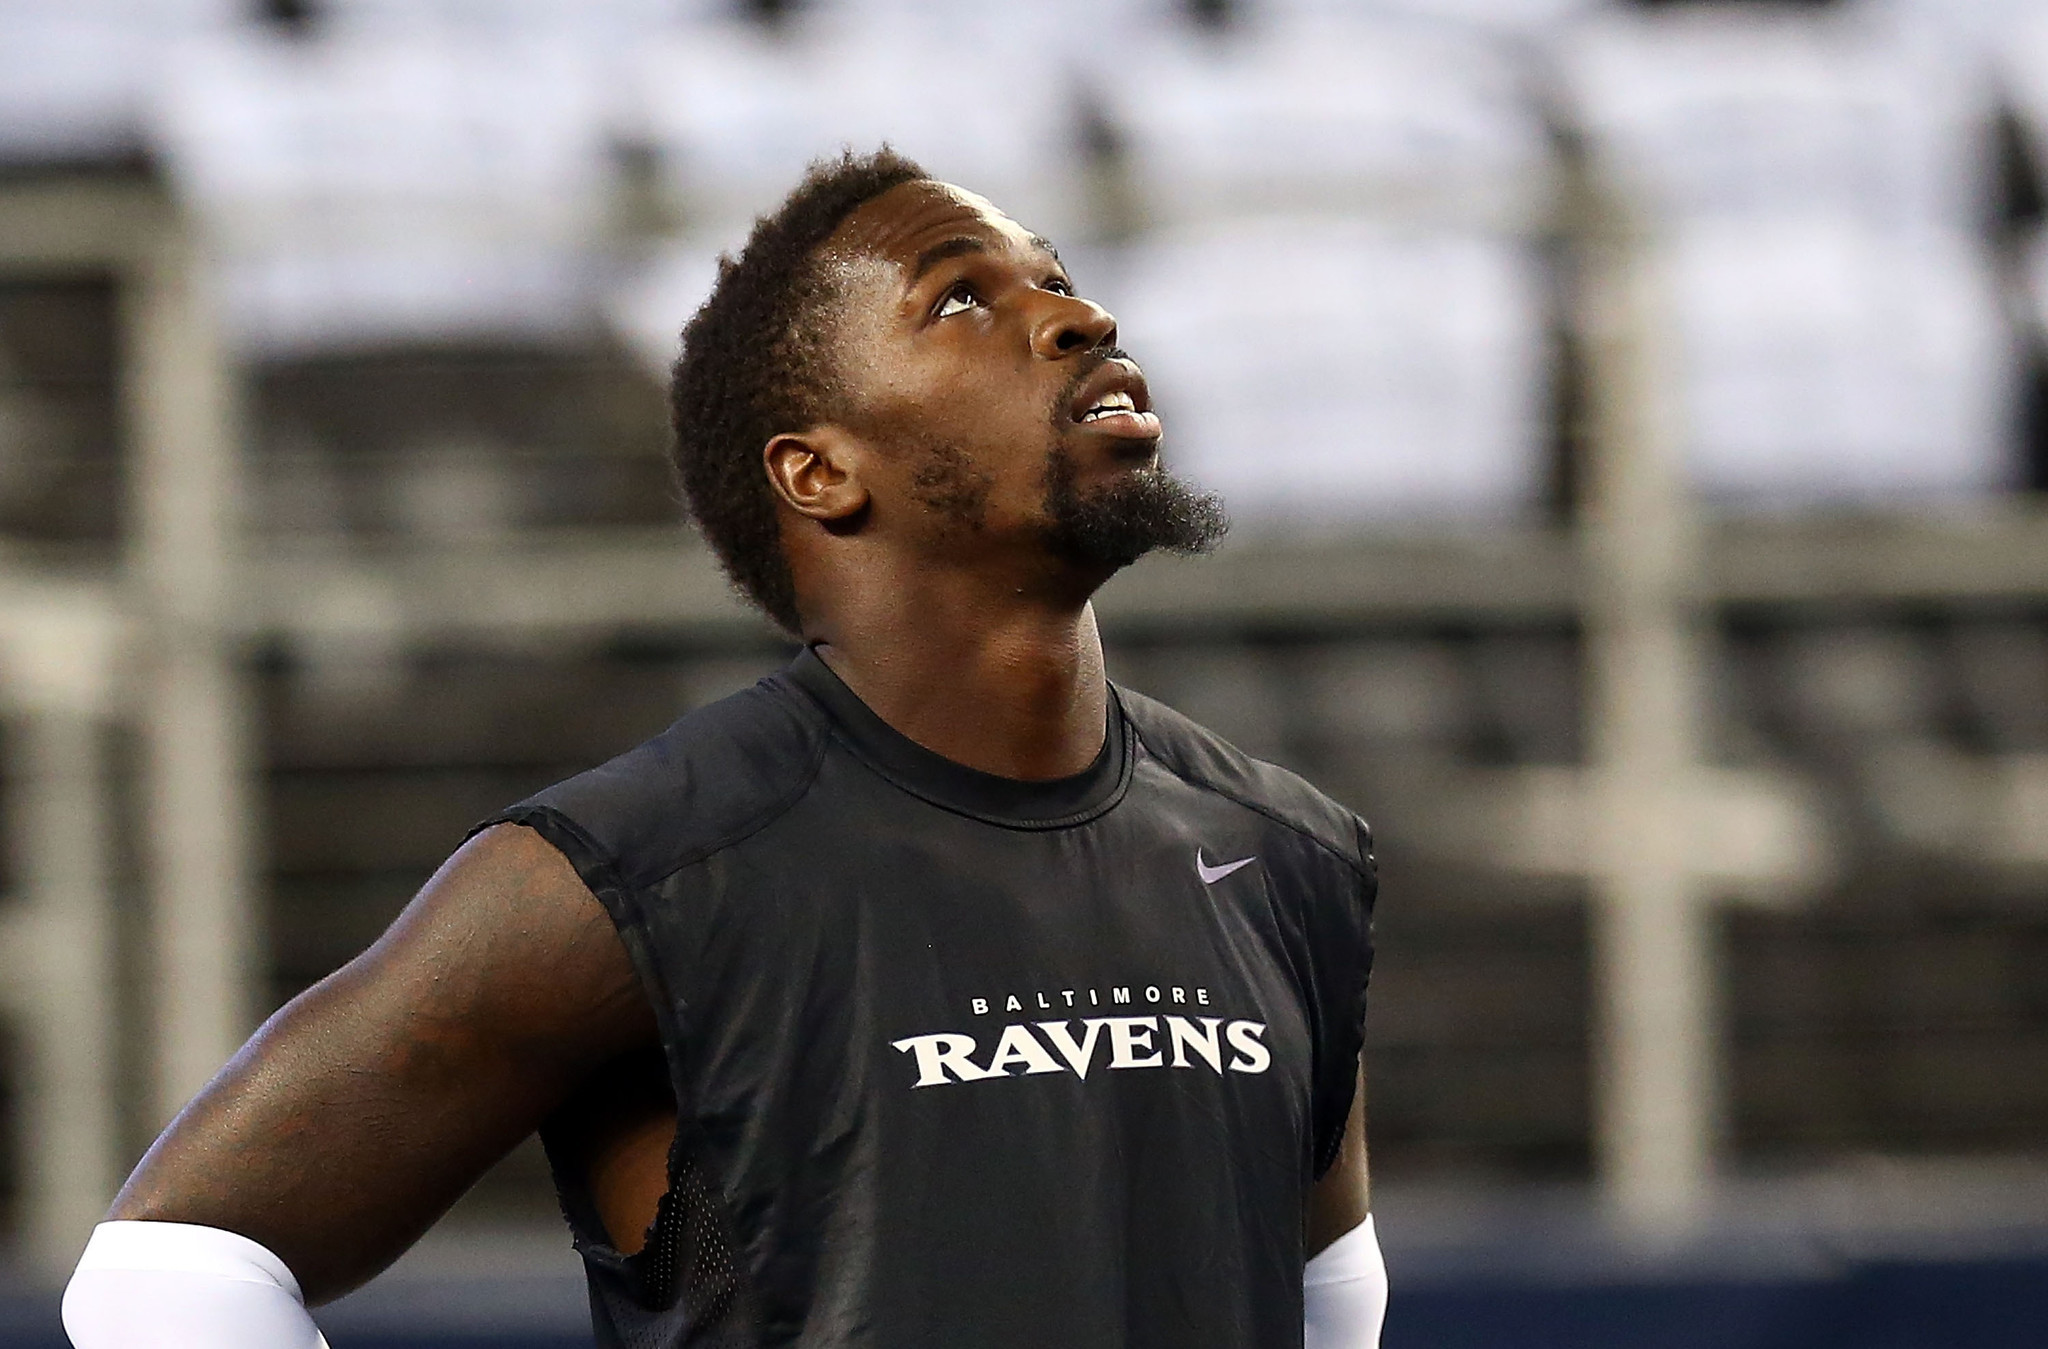 Ravens linebacker C J Mosley could be limited in offseason